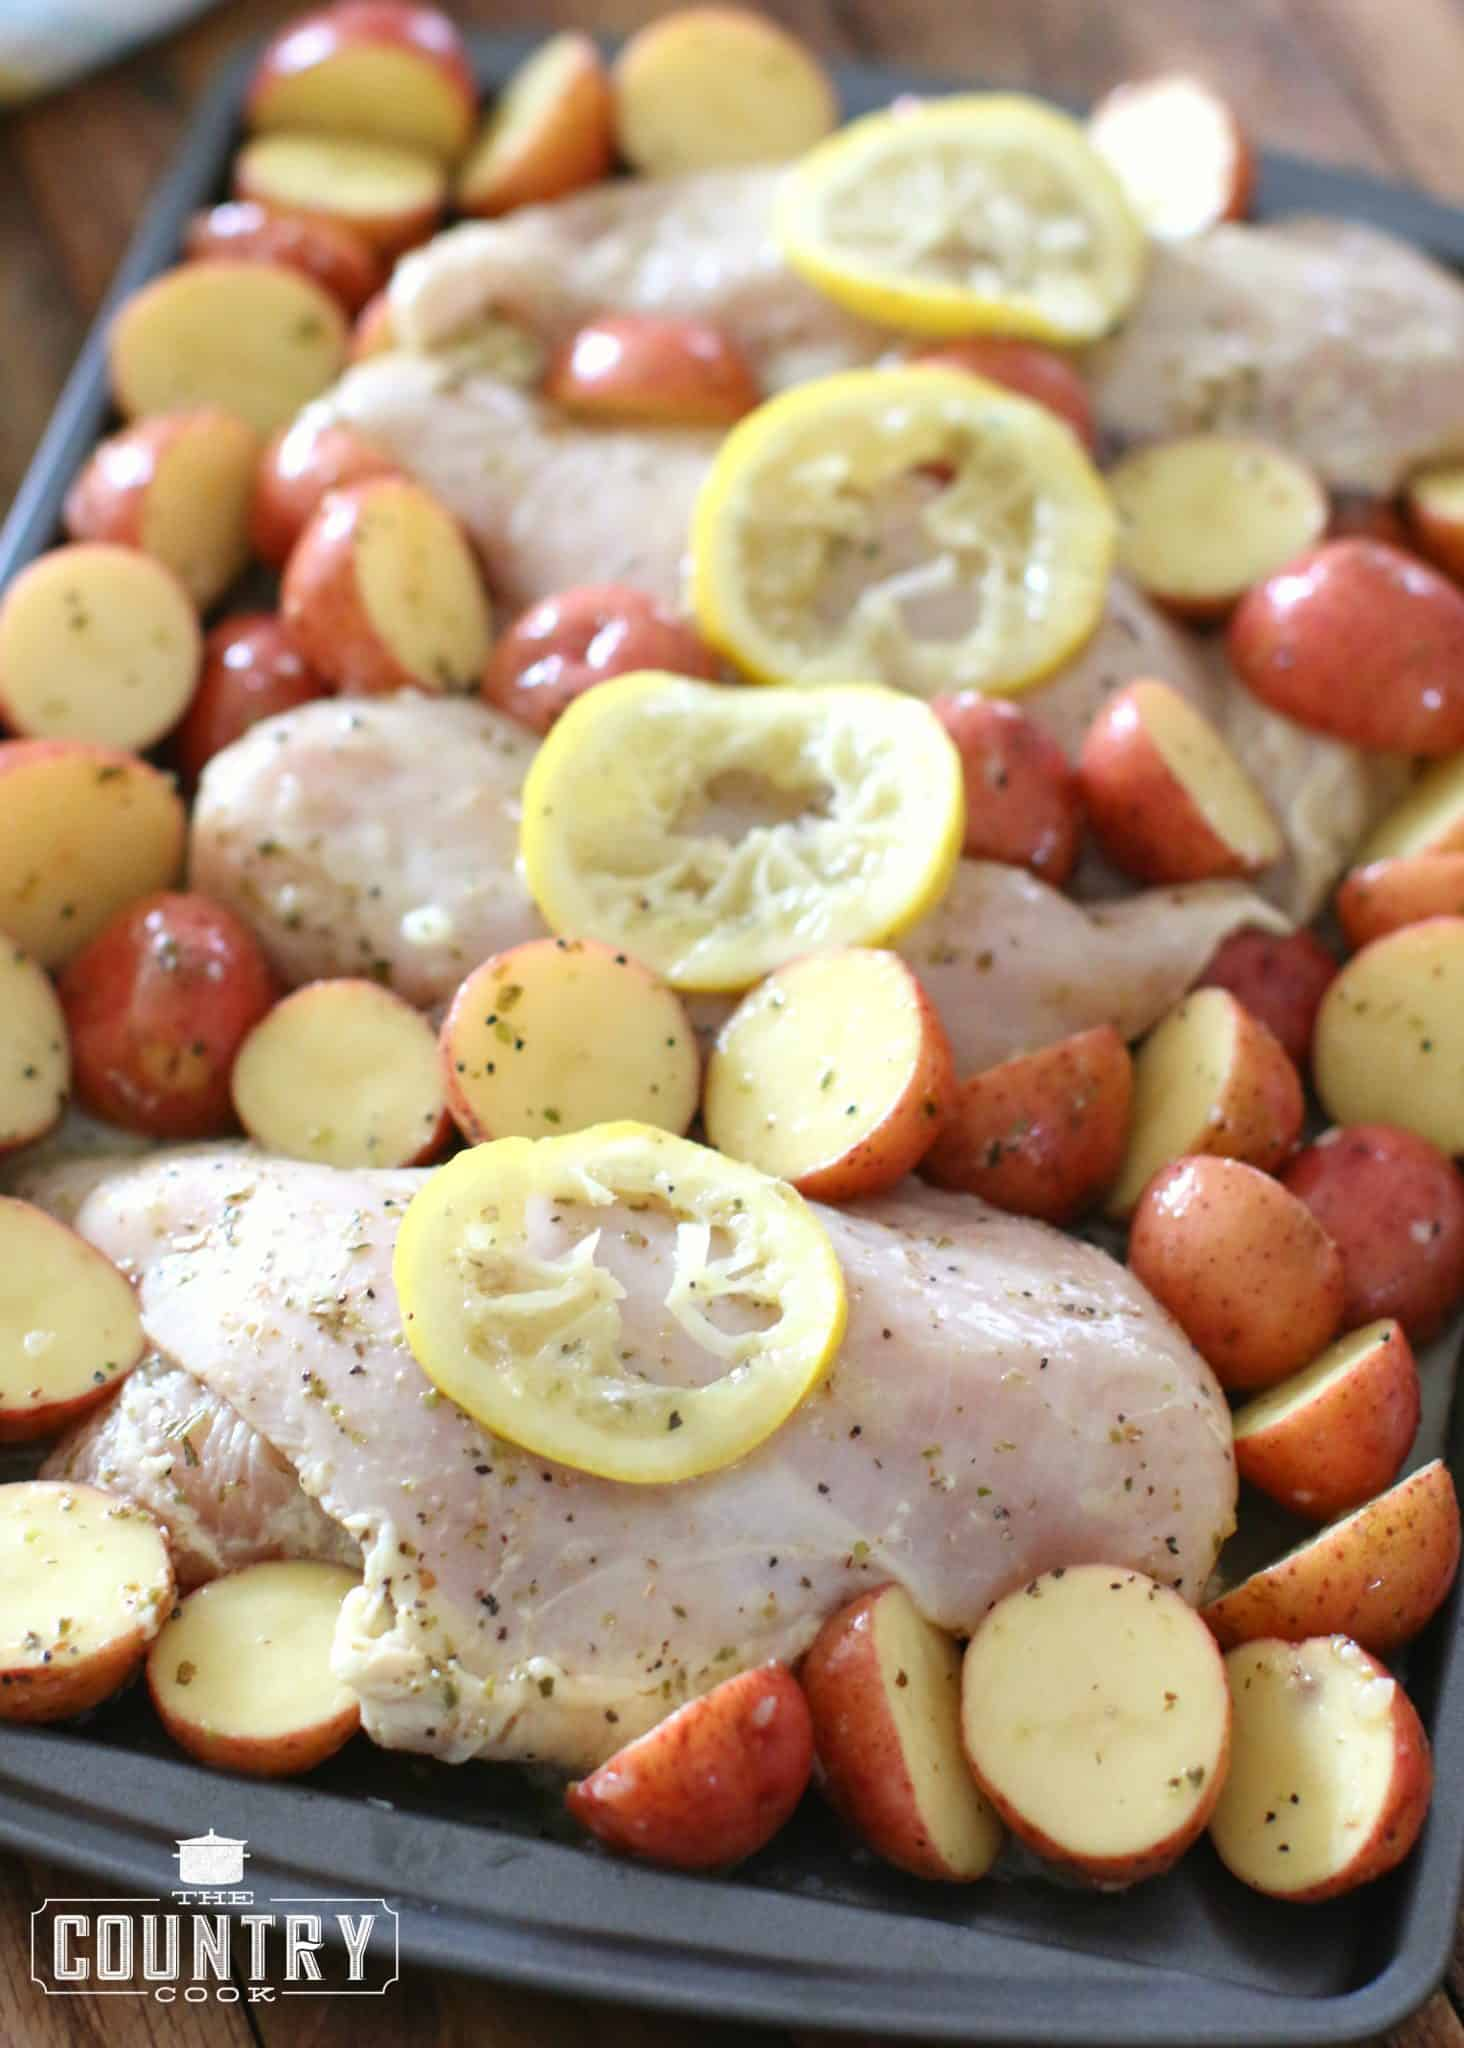 marinated chicken breasts and sliced little potatoes placed evenly on a baking sheet and topped with sliced lemon.